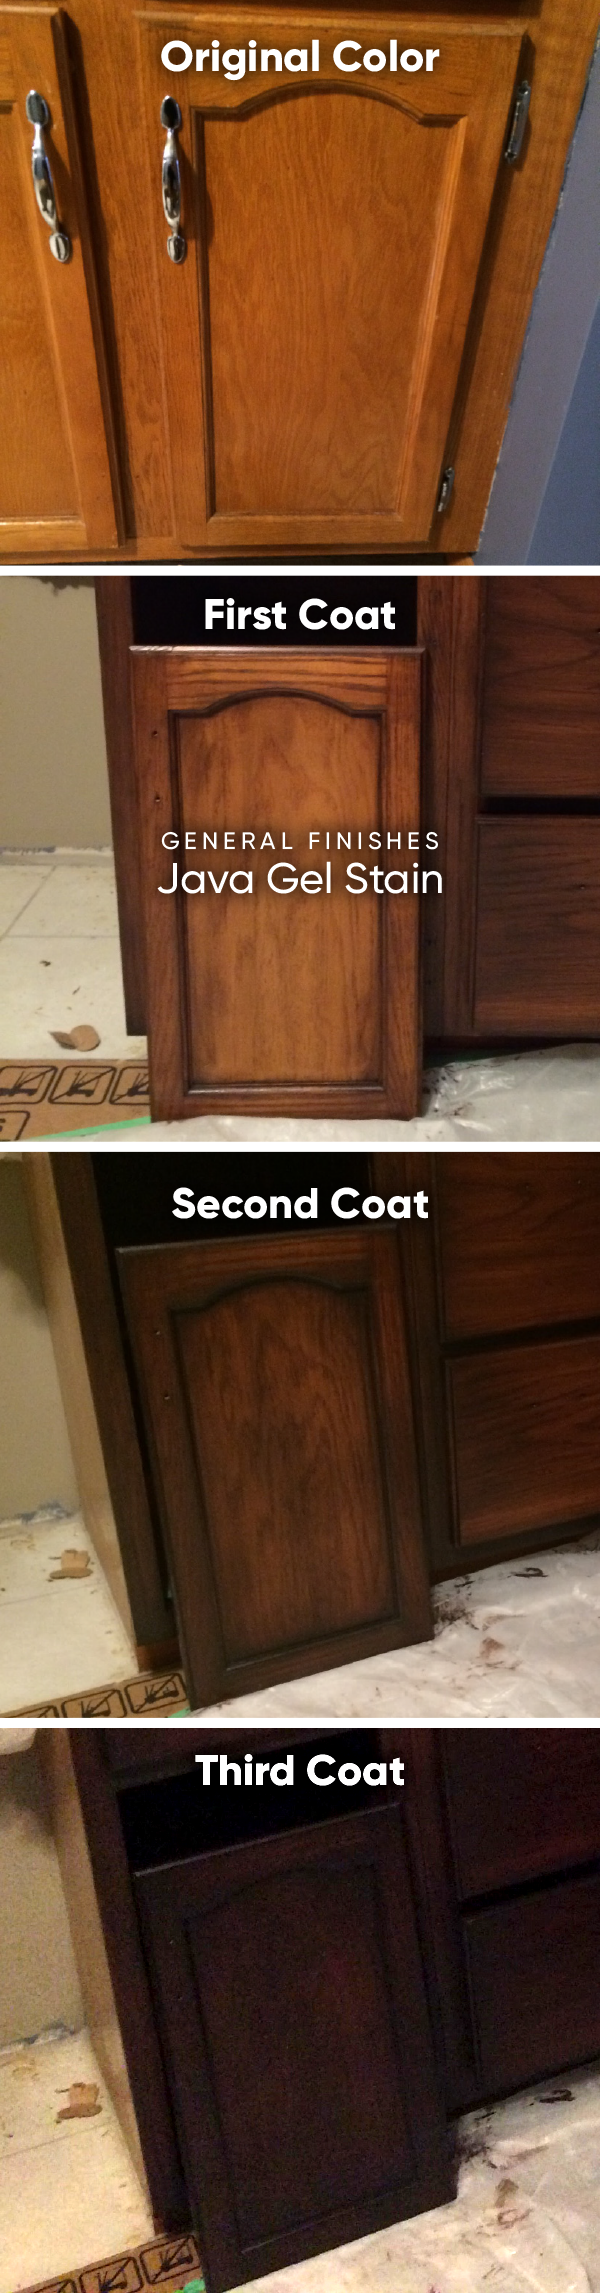 Staining Oak Cabinets Espresso Cabinets And Furniture Finishes Stains Cabinets And Staining